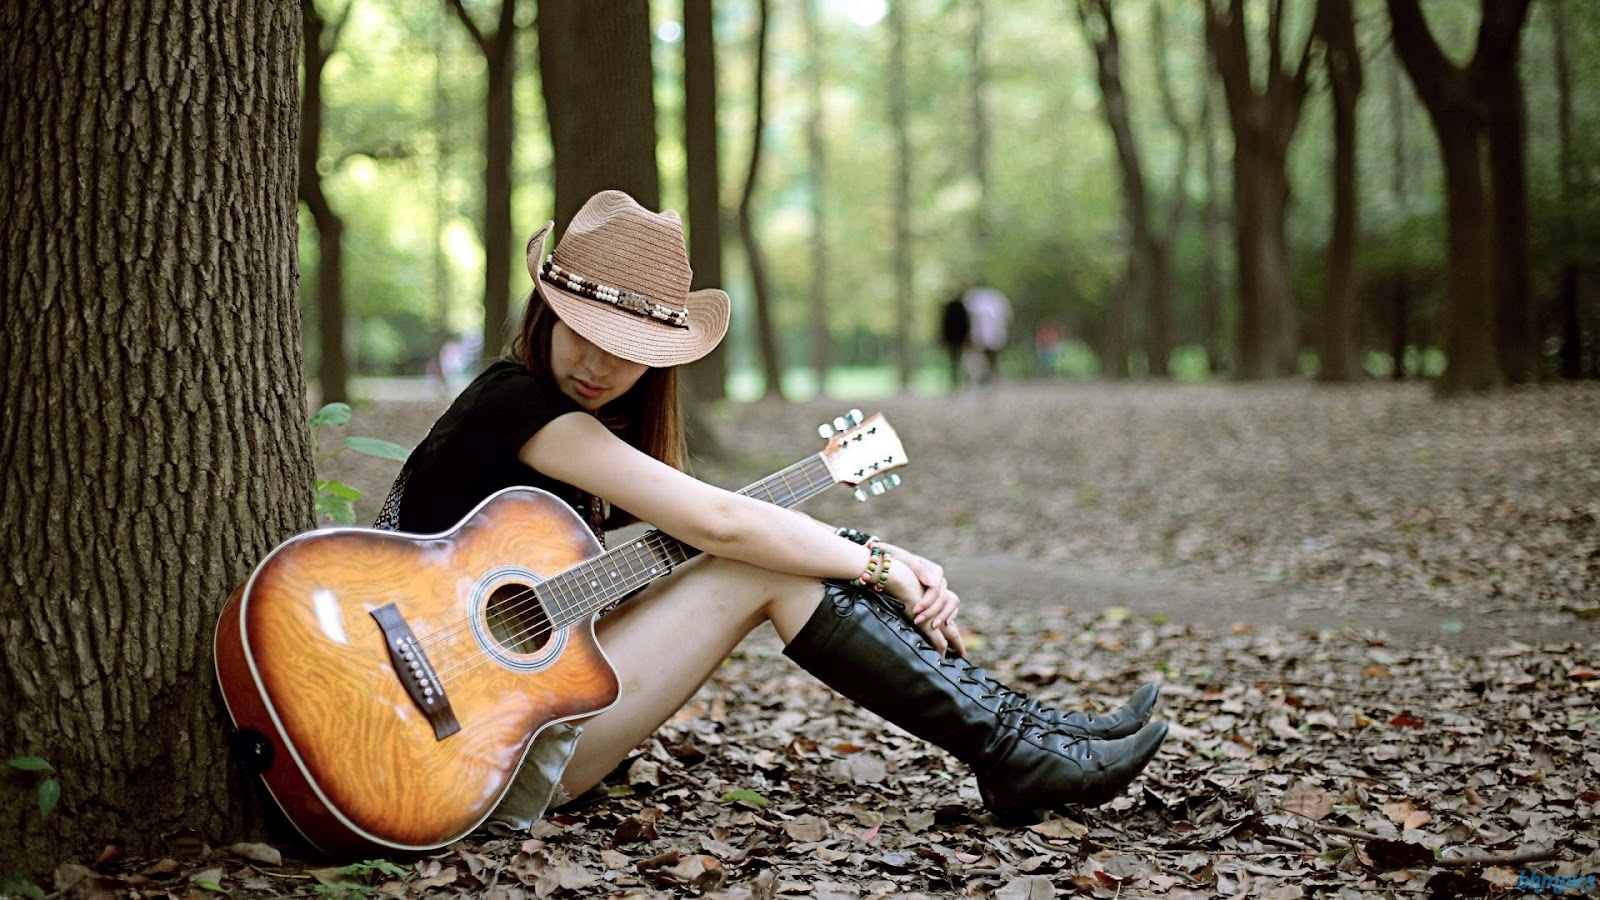 Girl With Guitar Wallpapers And Girl With Guitar Pics And